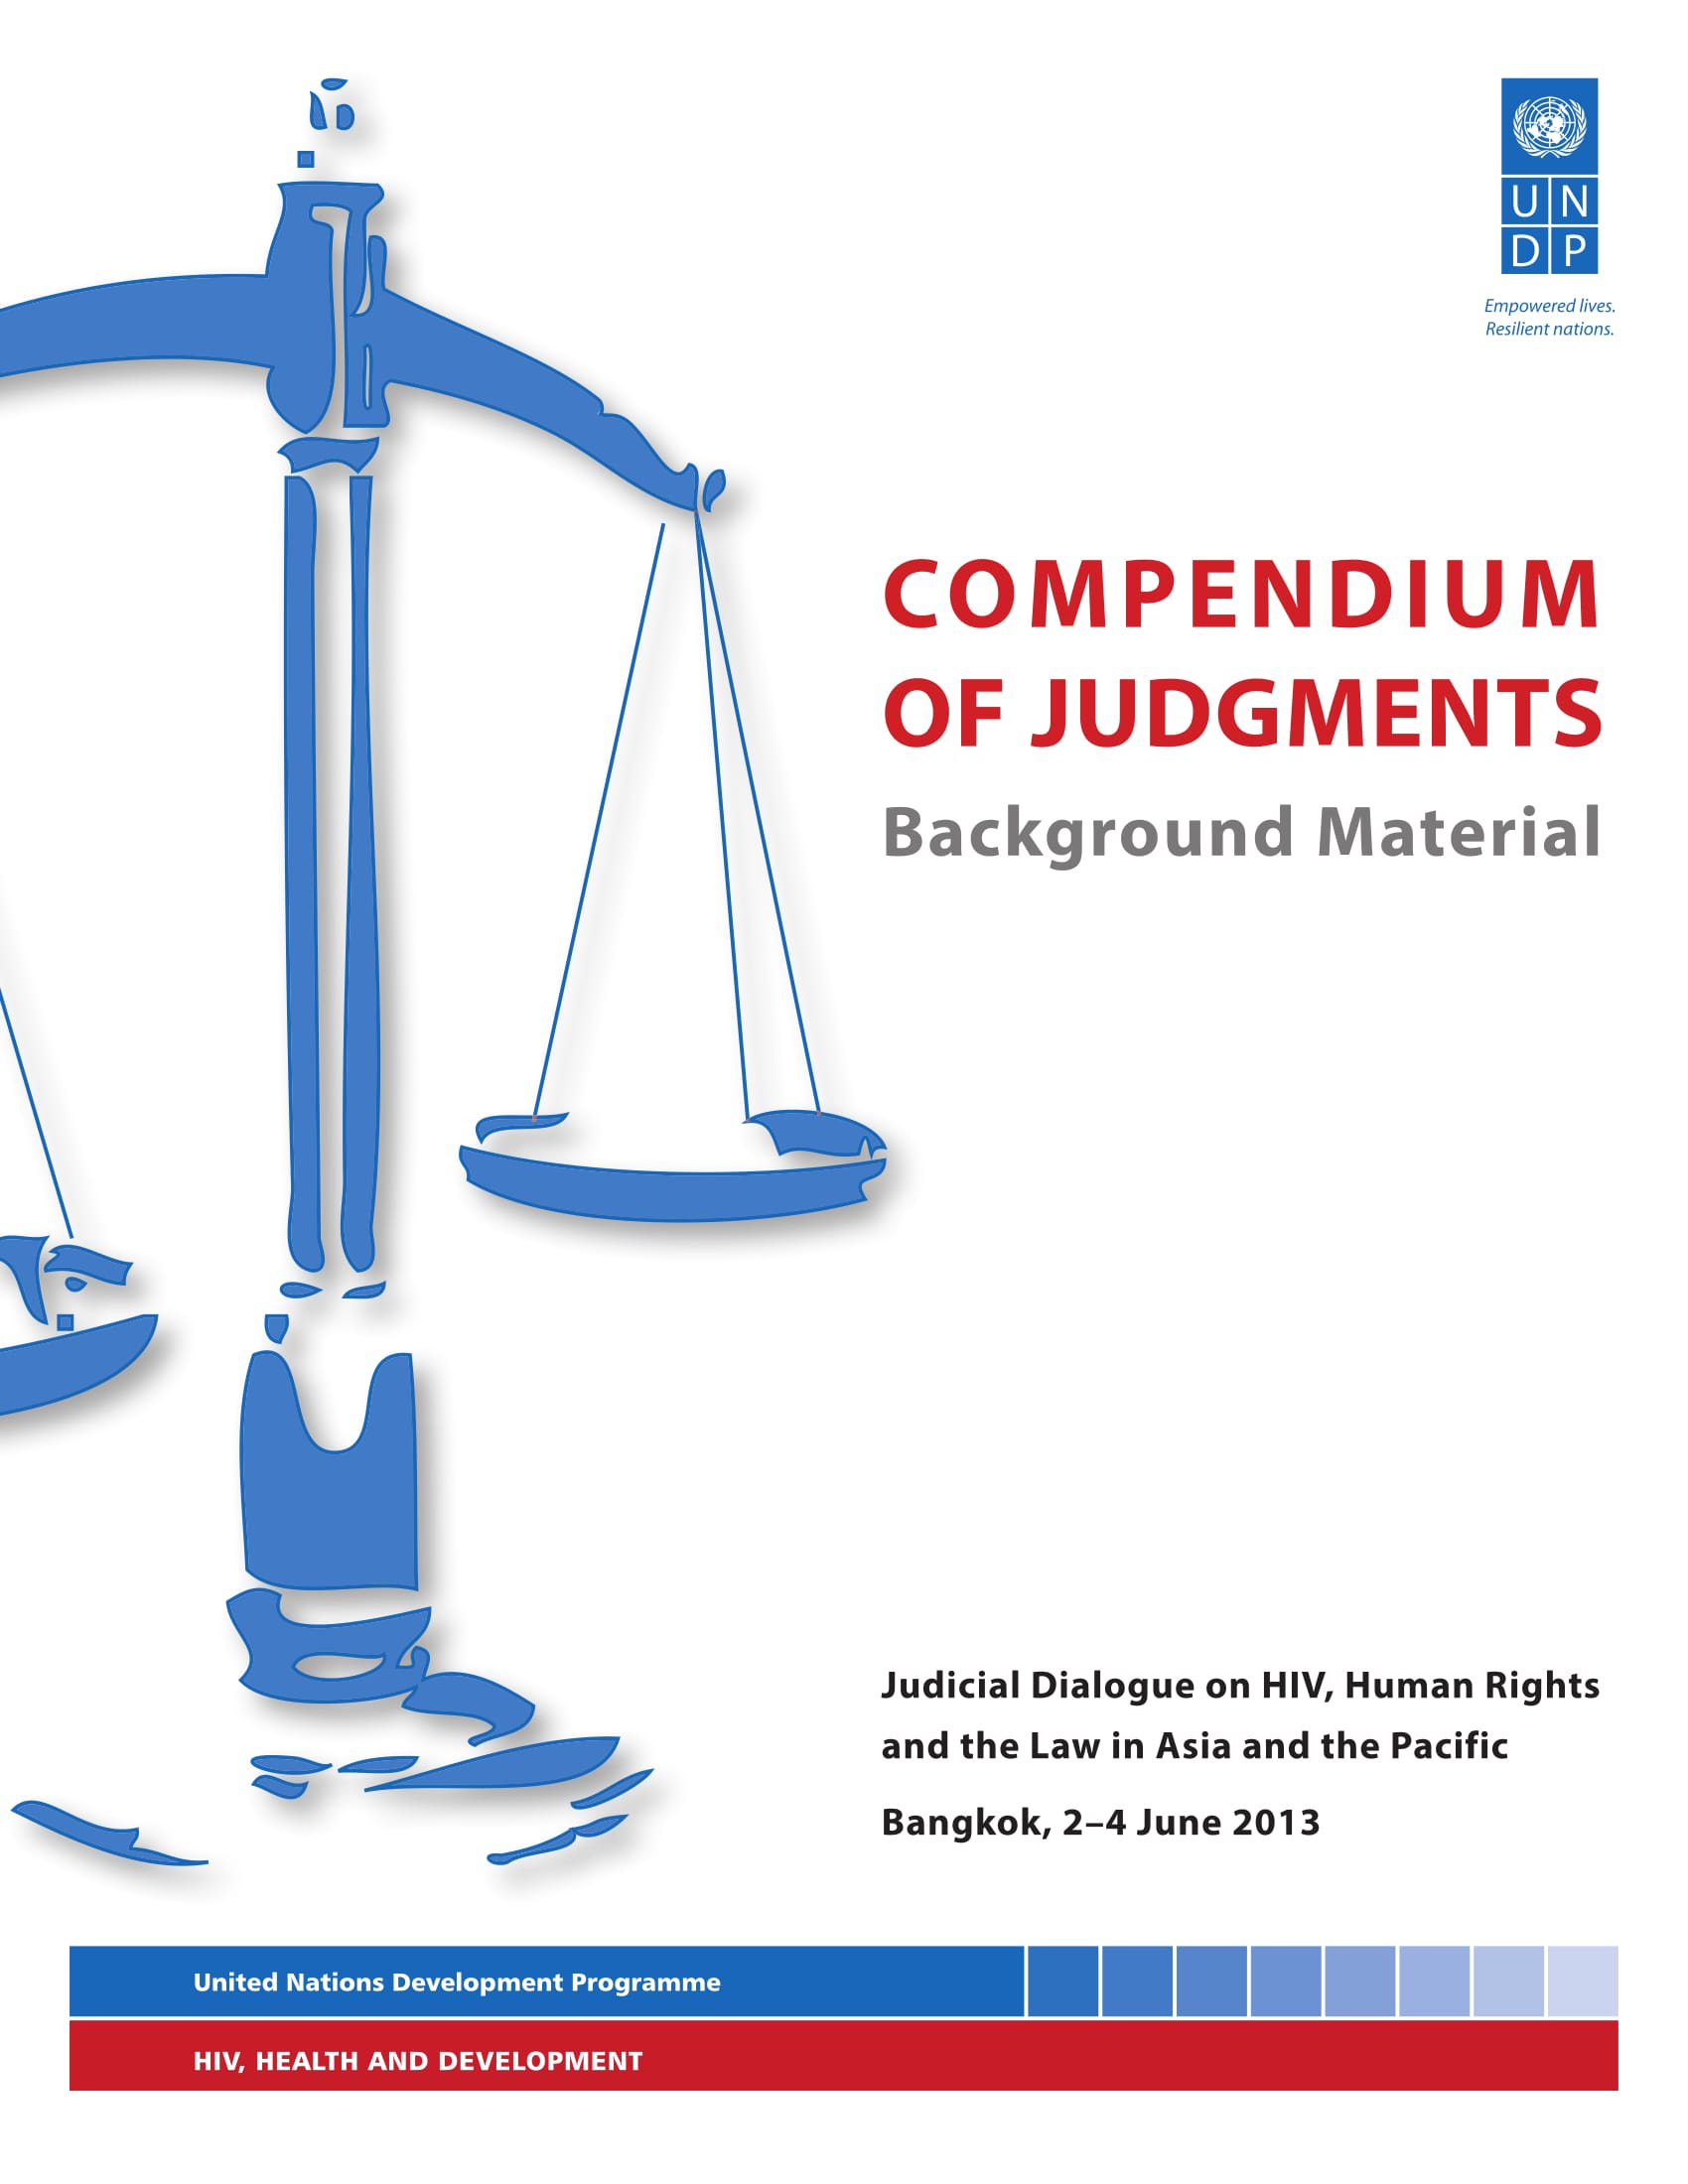 Compendium of Judgements for Judicial Dialogue on HIV, Human Rights and the Law in Asia and the Pacific